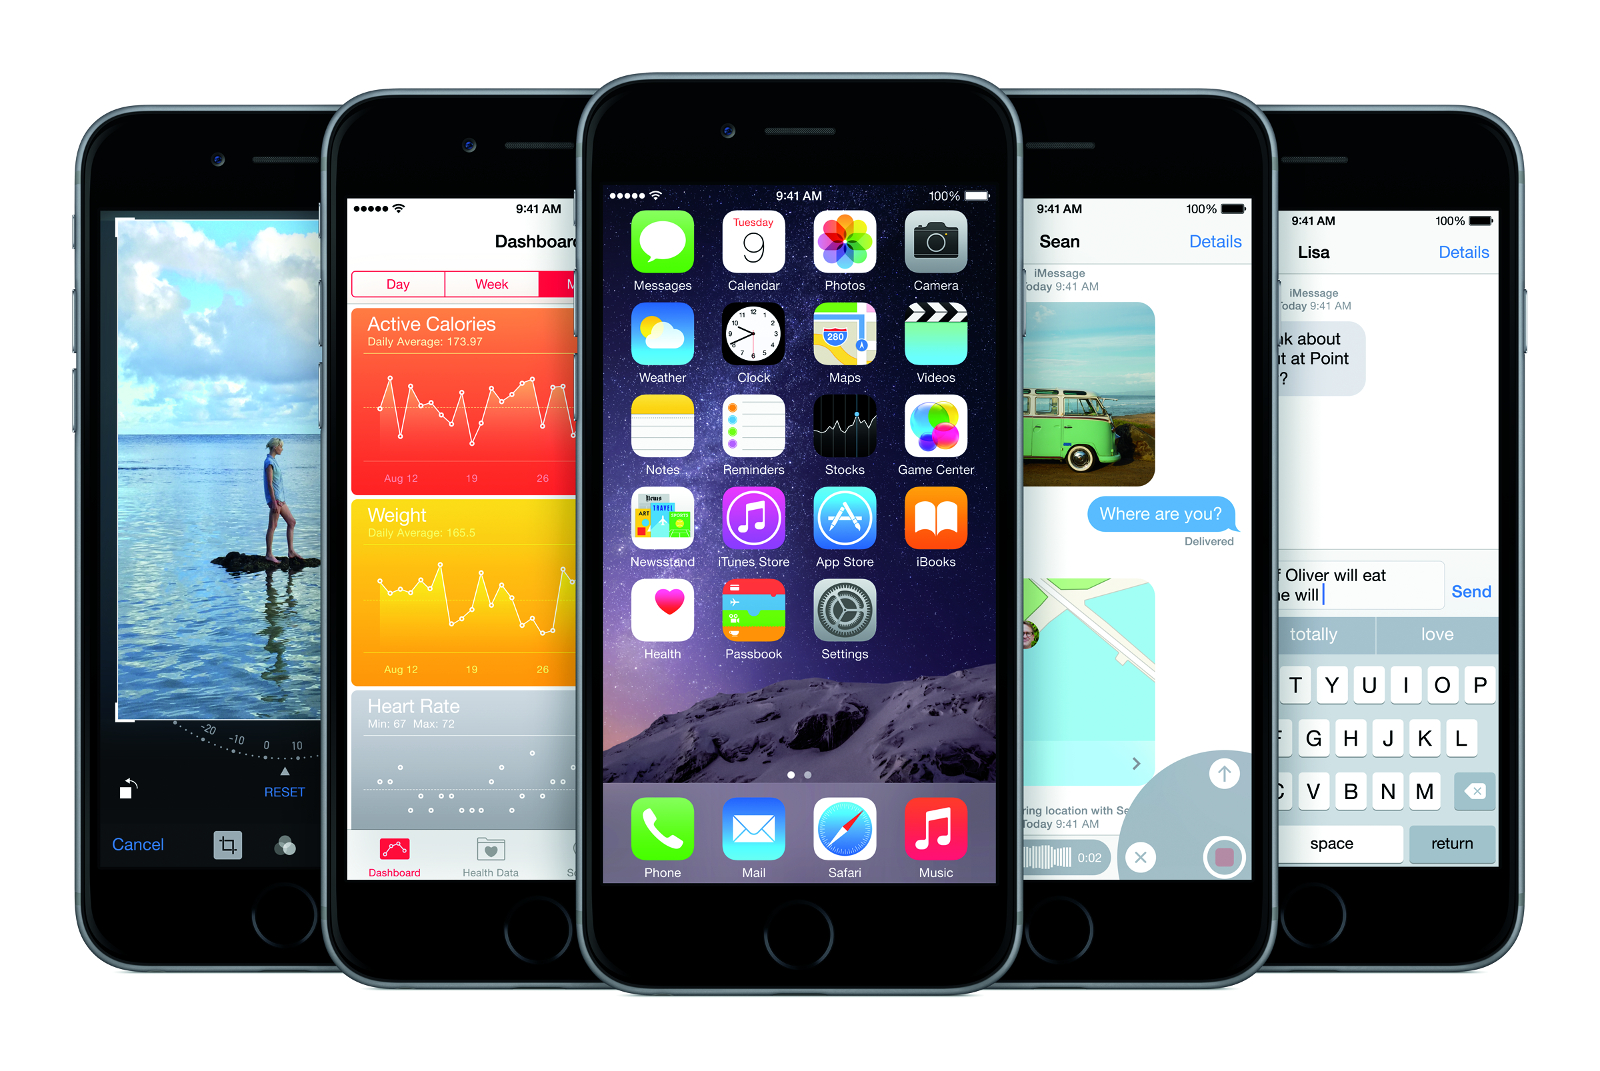 How to Downgrade iOS 8.0.1 to iOS 8.0.0